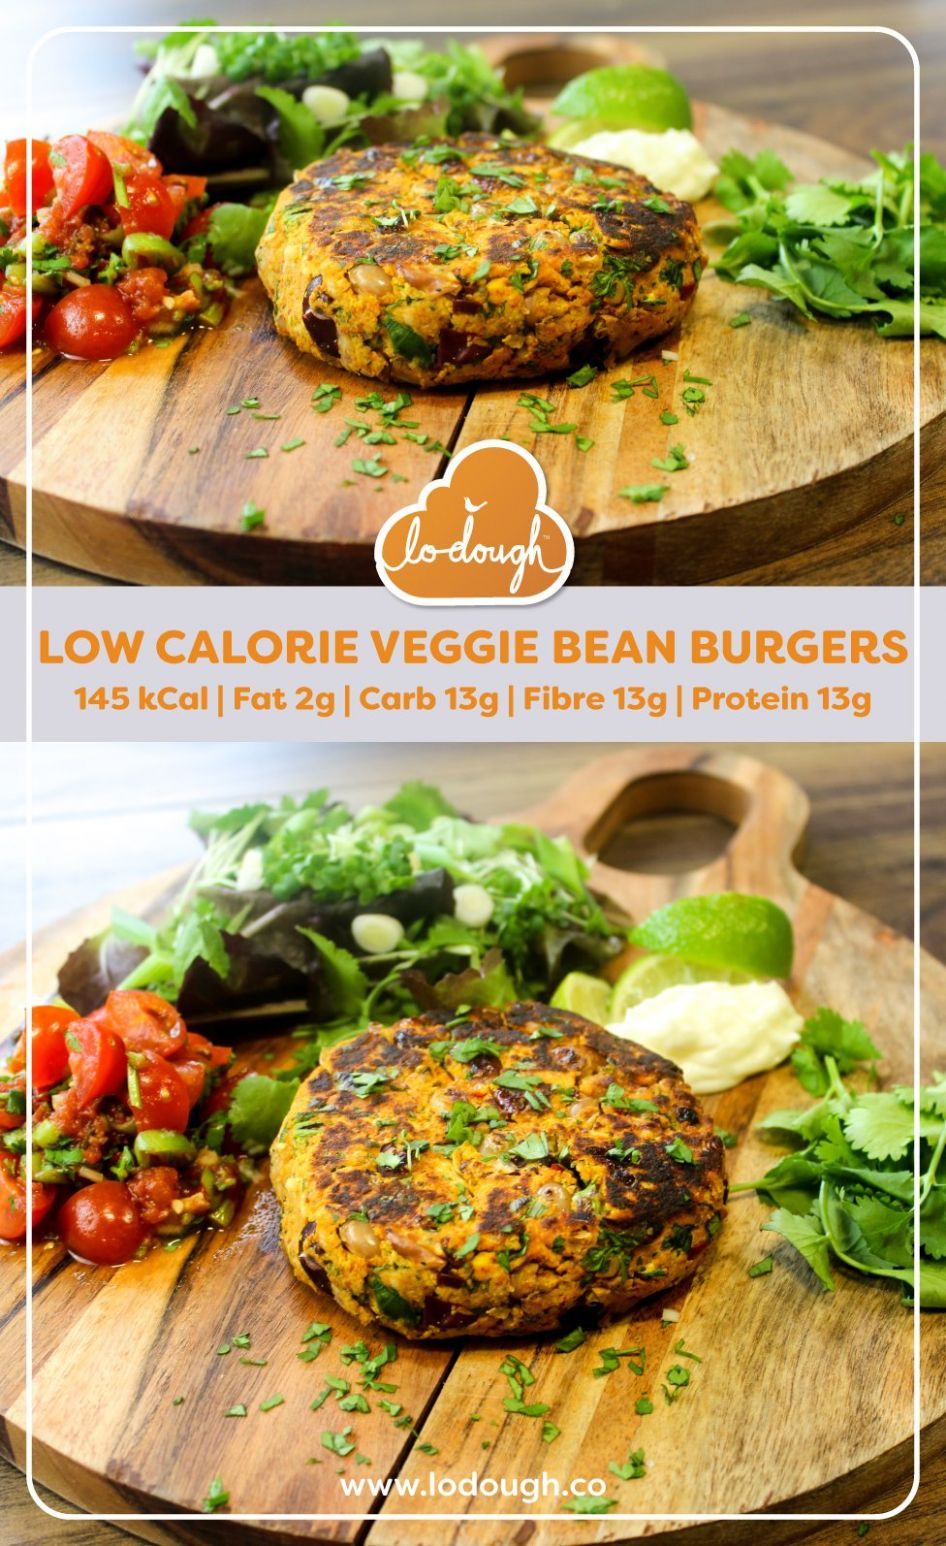 Low Calorie Veggie Bean Burgers - Recipes Vegetarian Low Calorie